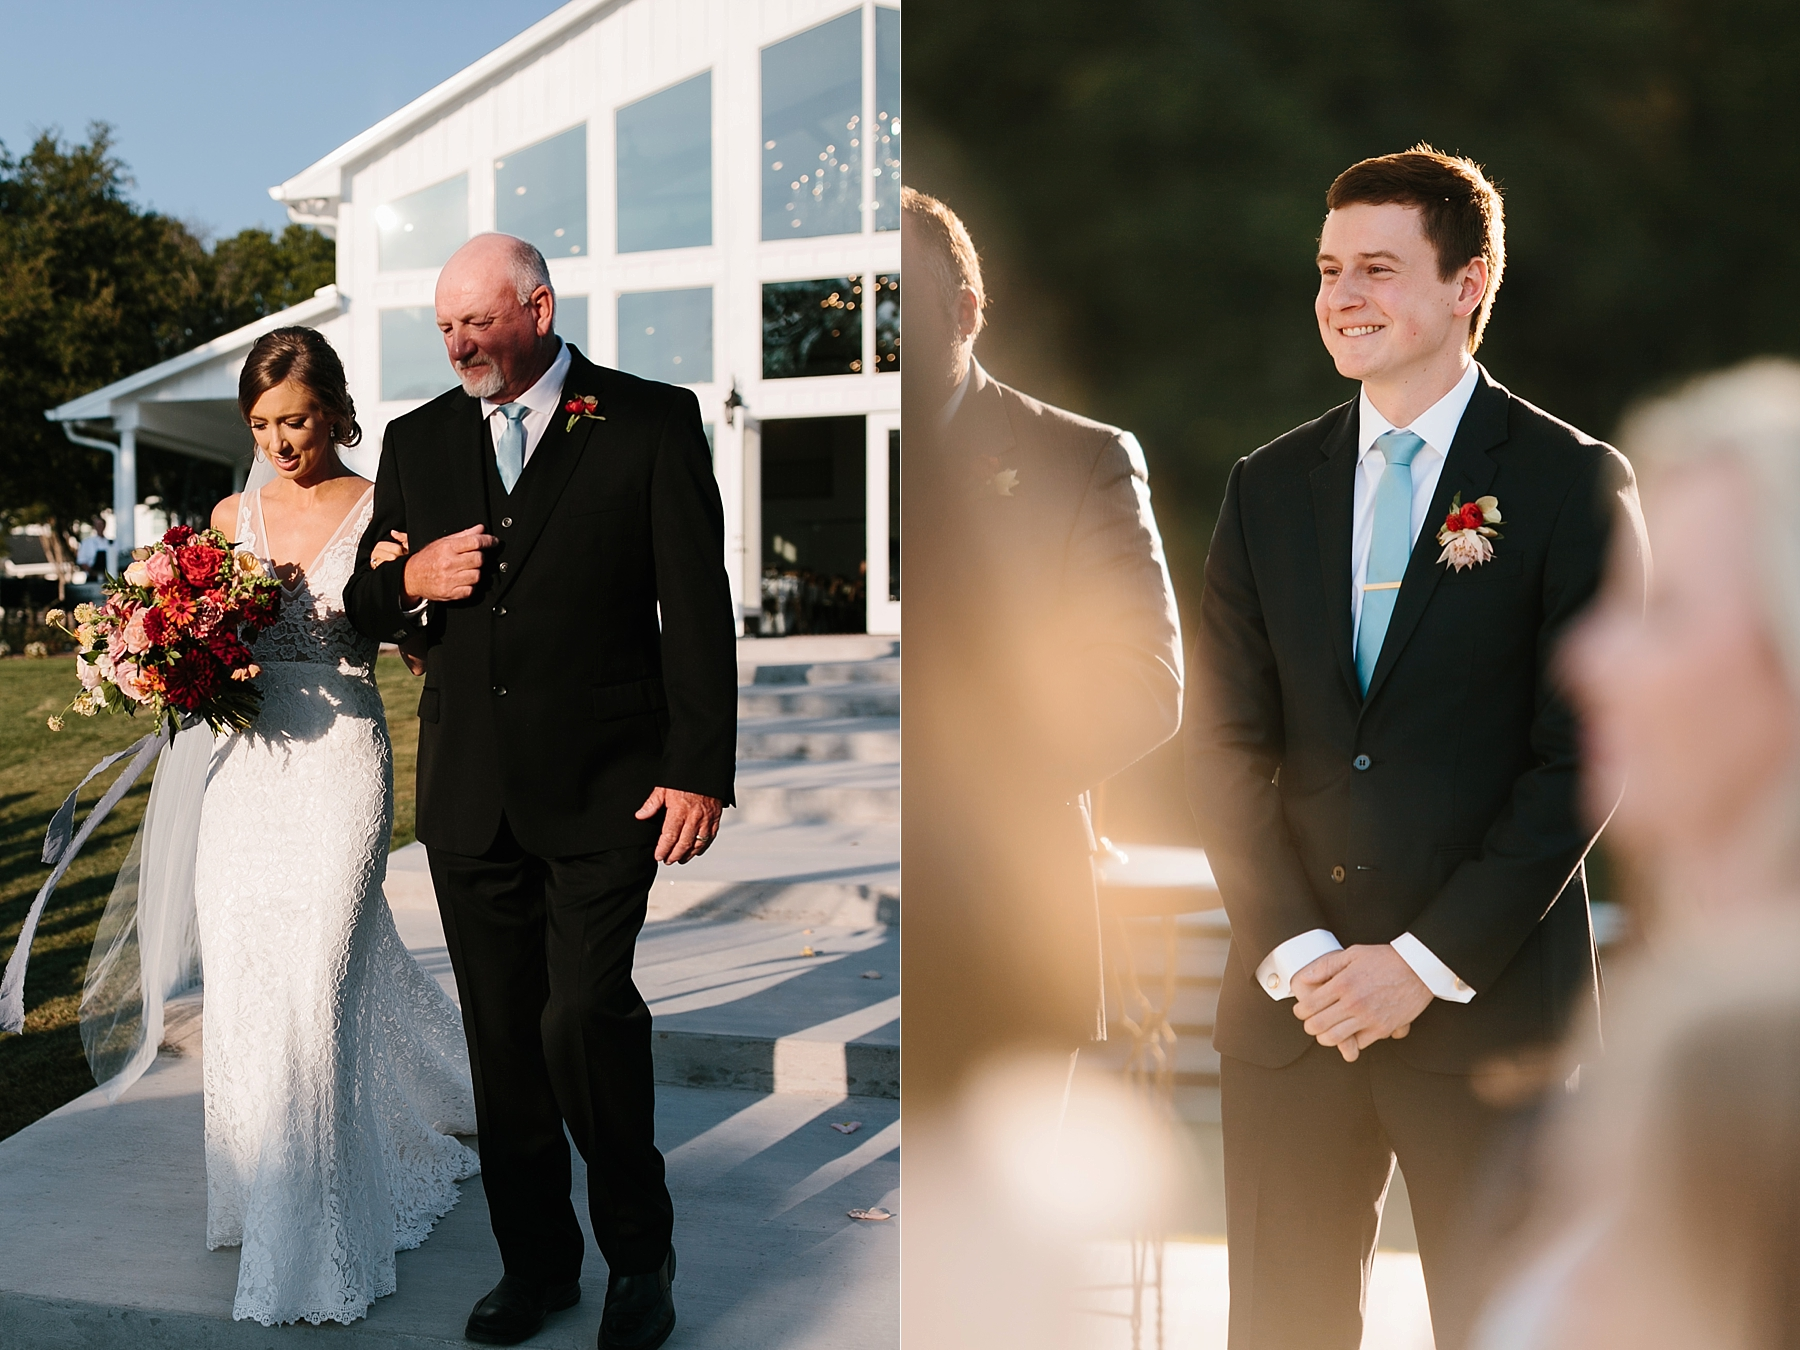 Lauren + Nathan _ a vibrant, wedding with a Navy, Red, and Duck Egg Blue Pallete at Firefly Gardens by North Texas Wedding Photographer Rachel Meagan Photography _ 070